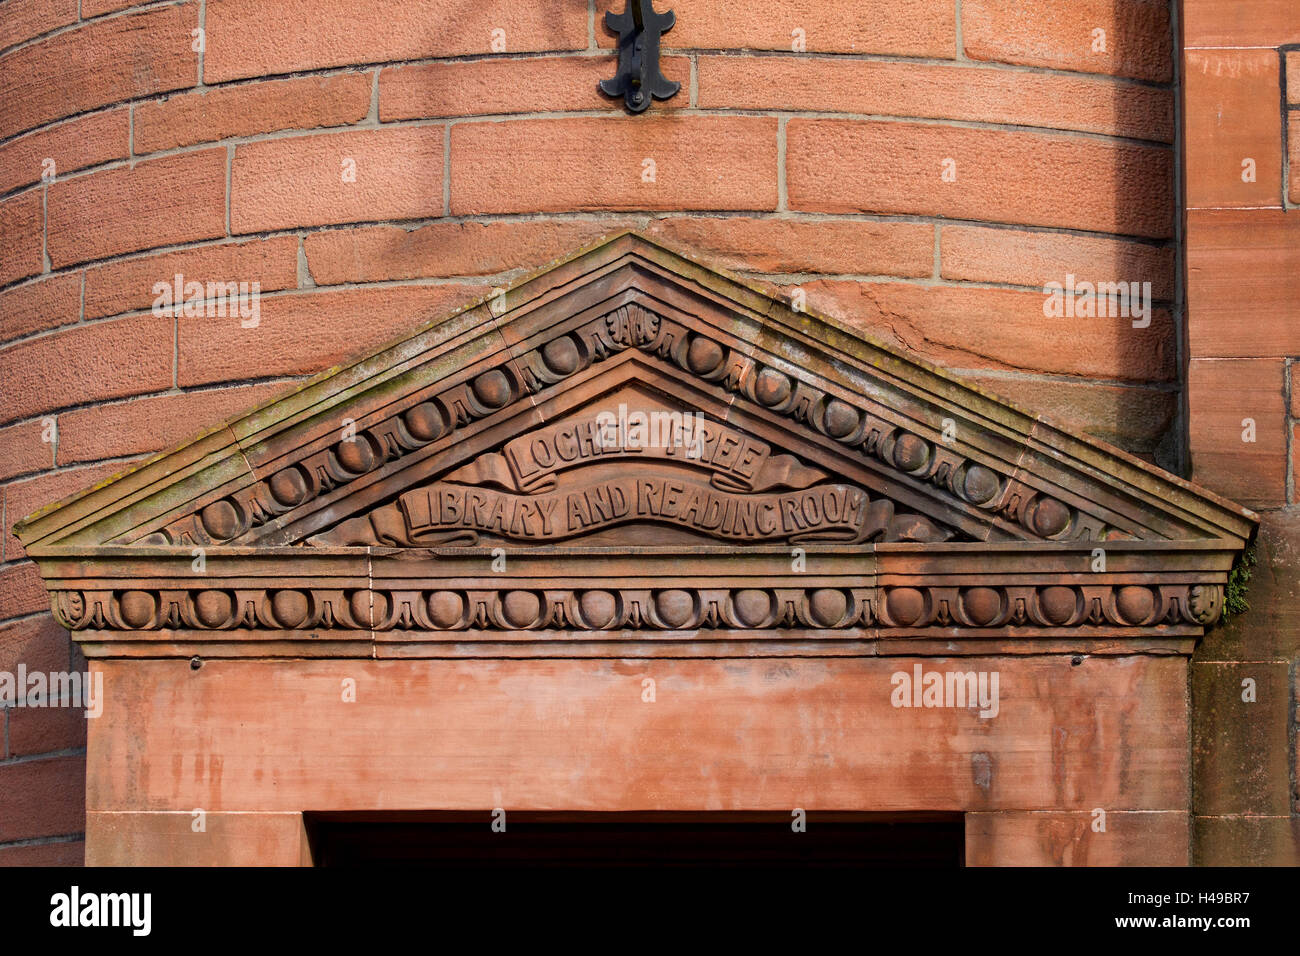 Front entrance of the 1894 Lochee Public Library and Reading-Room in Dundee,.UK - Stock Image